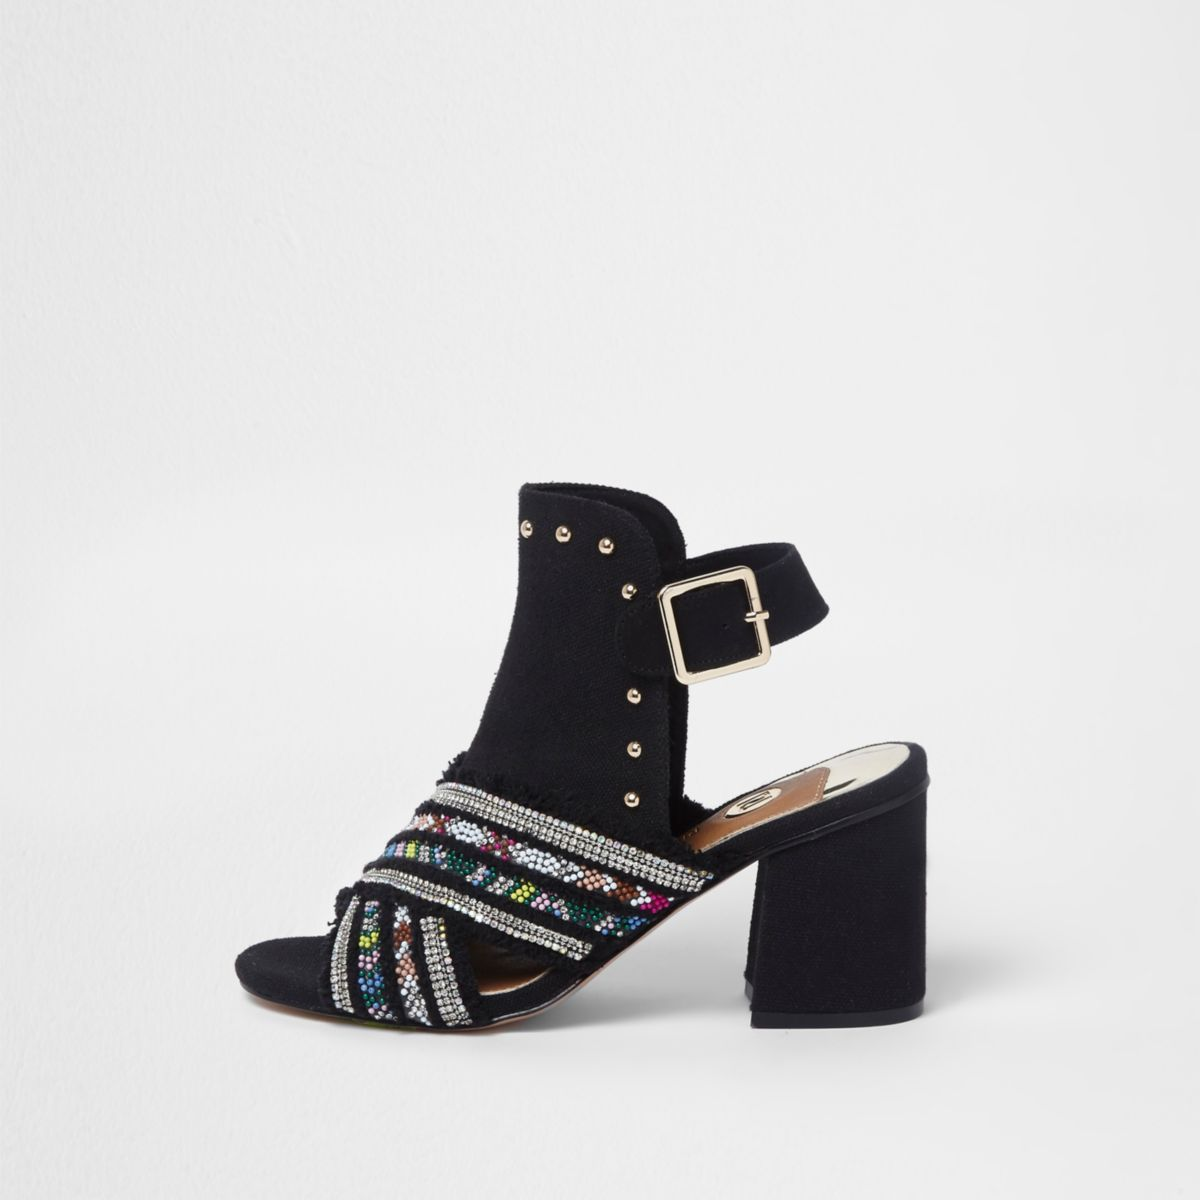 Black embellished block heel shoe boots